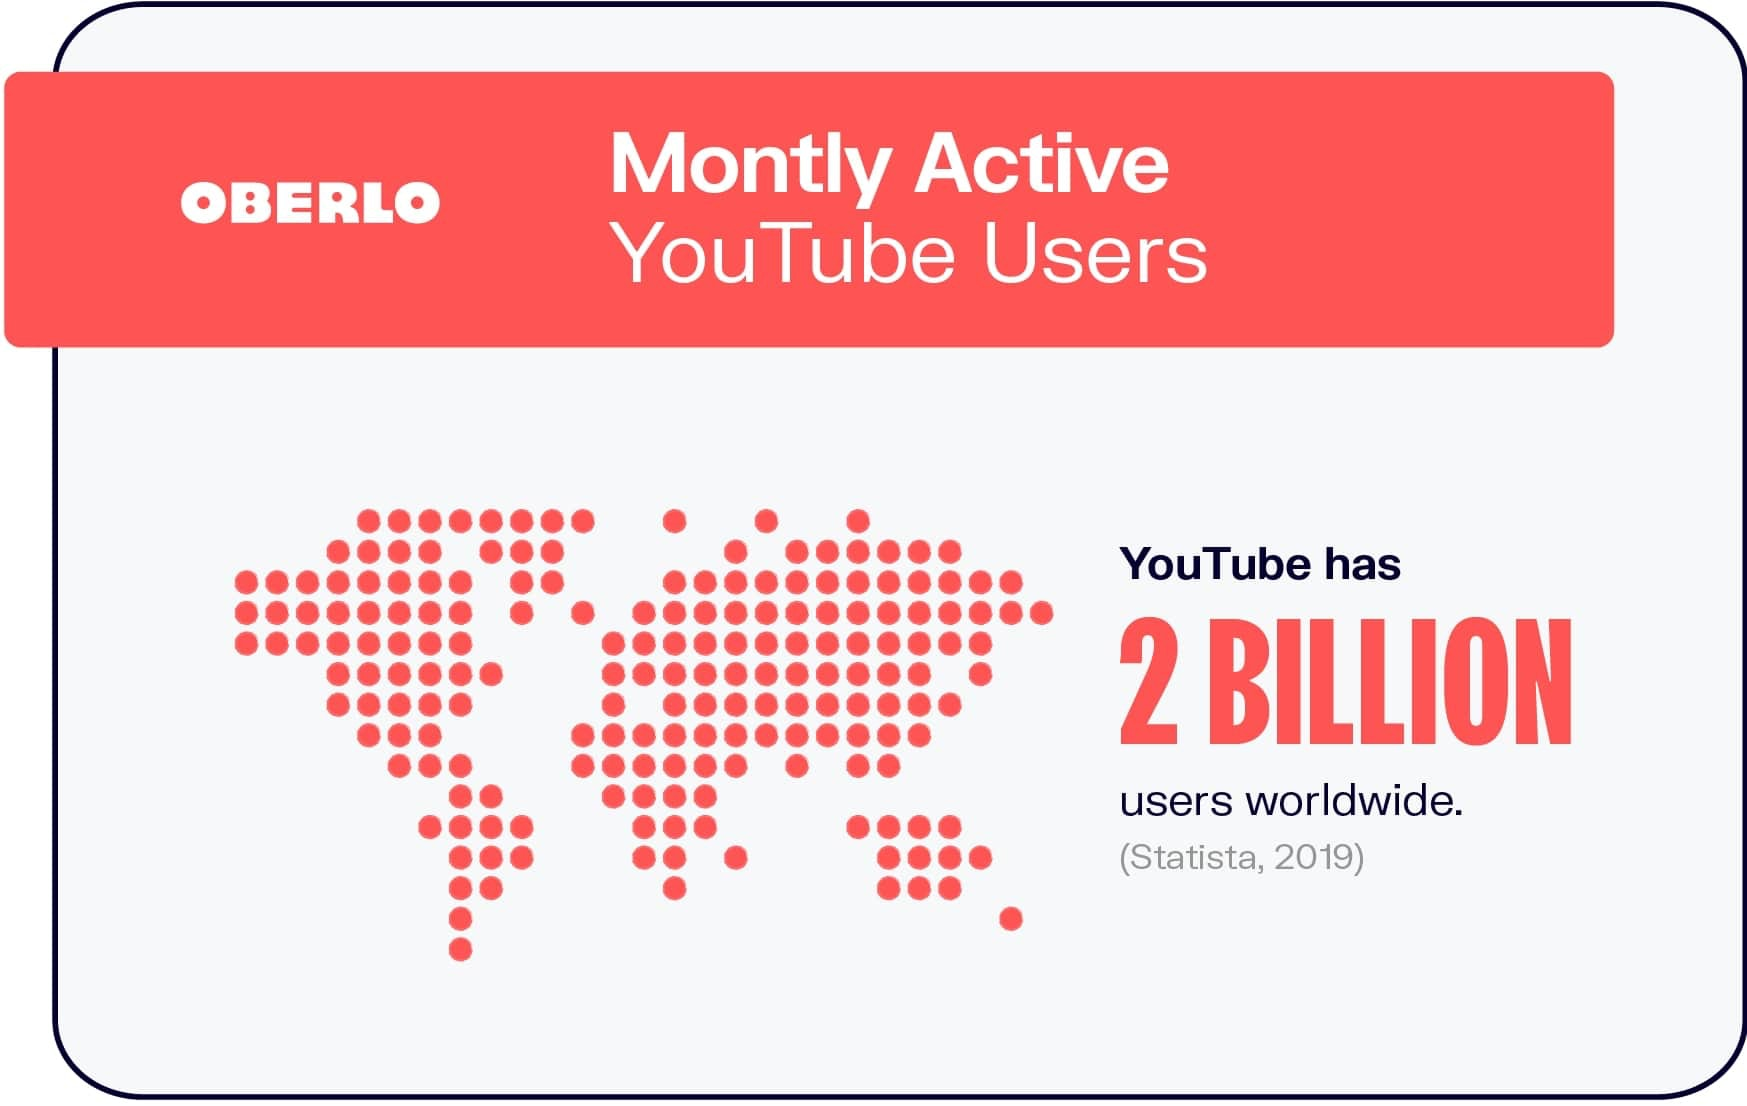 Monthly Active YouTube Users